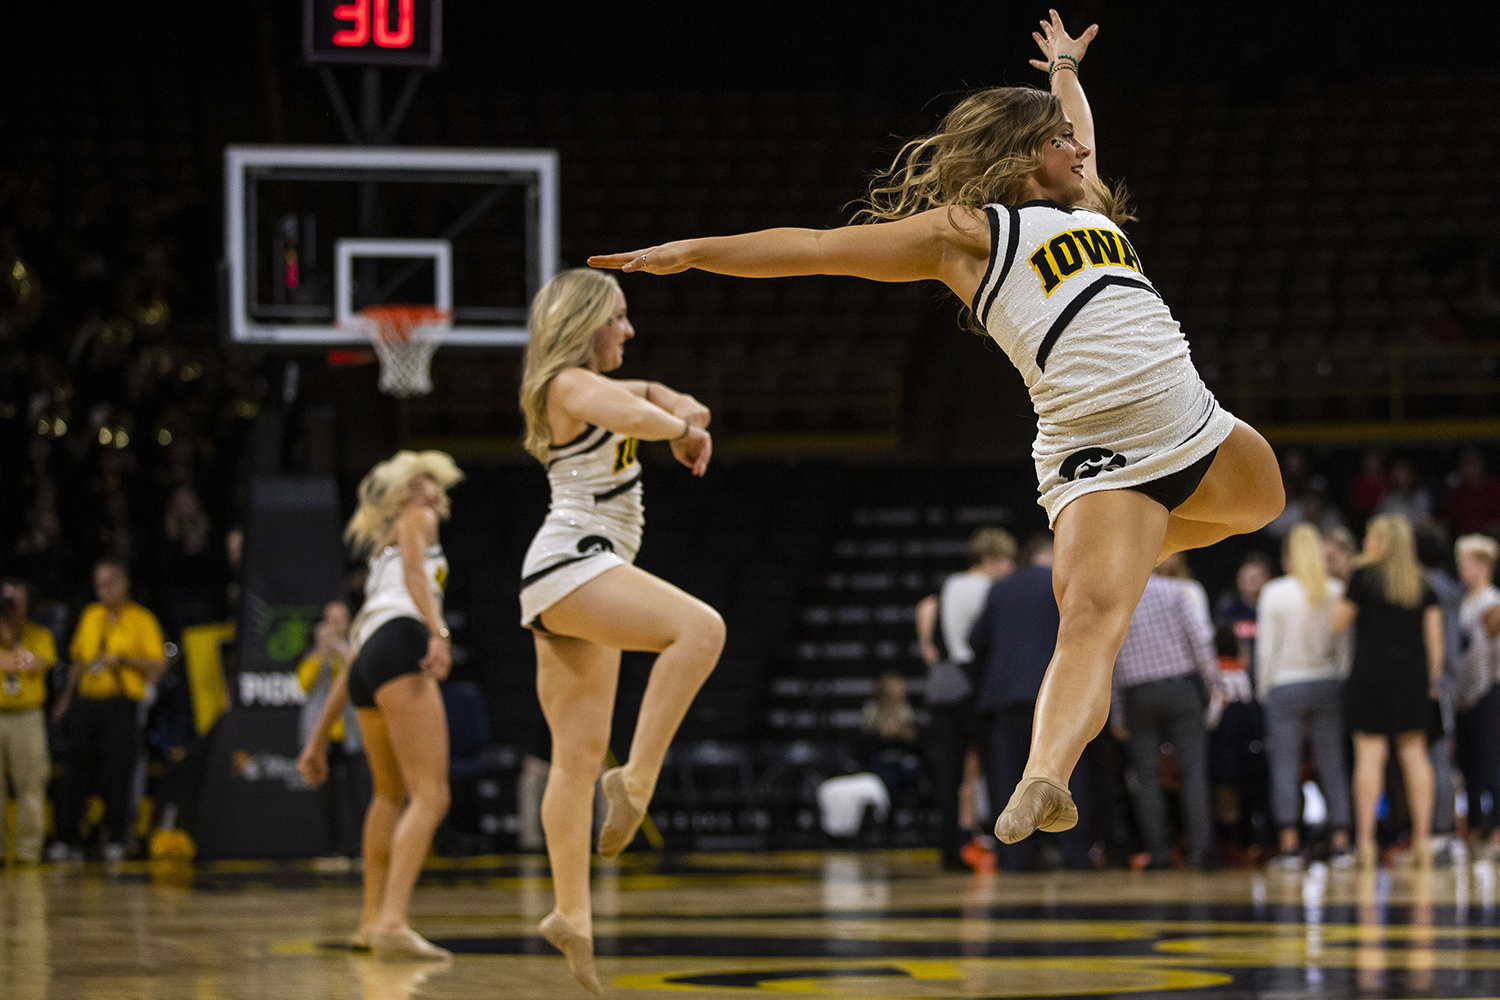 Iowa+Spirit+Squad+members+dance+during+a+timeout+during+the+Iowa%2FIllinois+women%27s+basketball+game+at+Carver-Hawkeye+Arena+on+Thursday%2C+February+14%2C+2019.+The+Hawkeyes+defeated+the+Fighting+Illini%2C+88-66.+